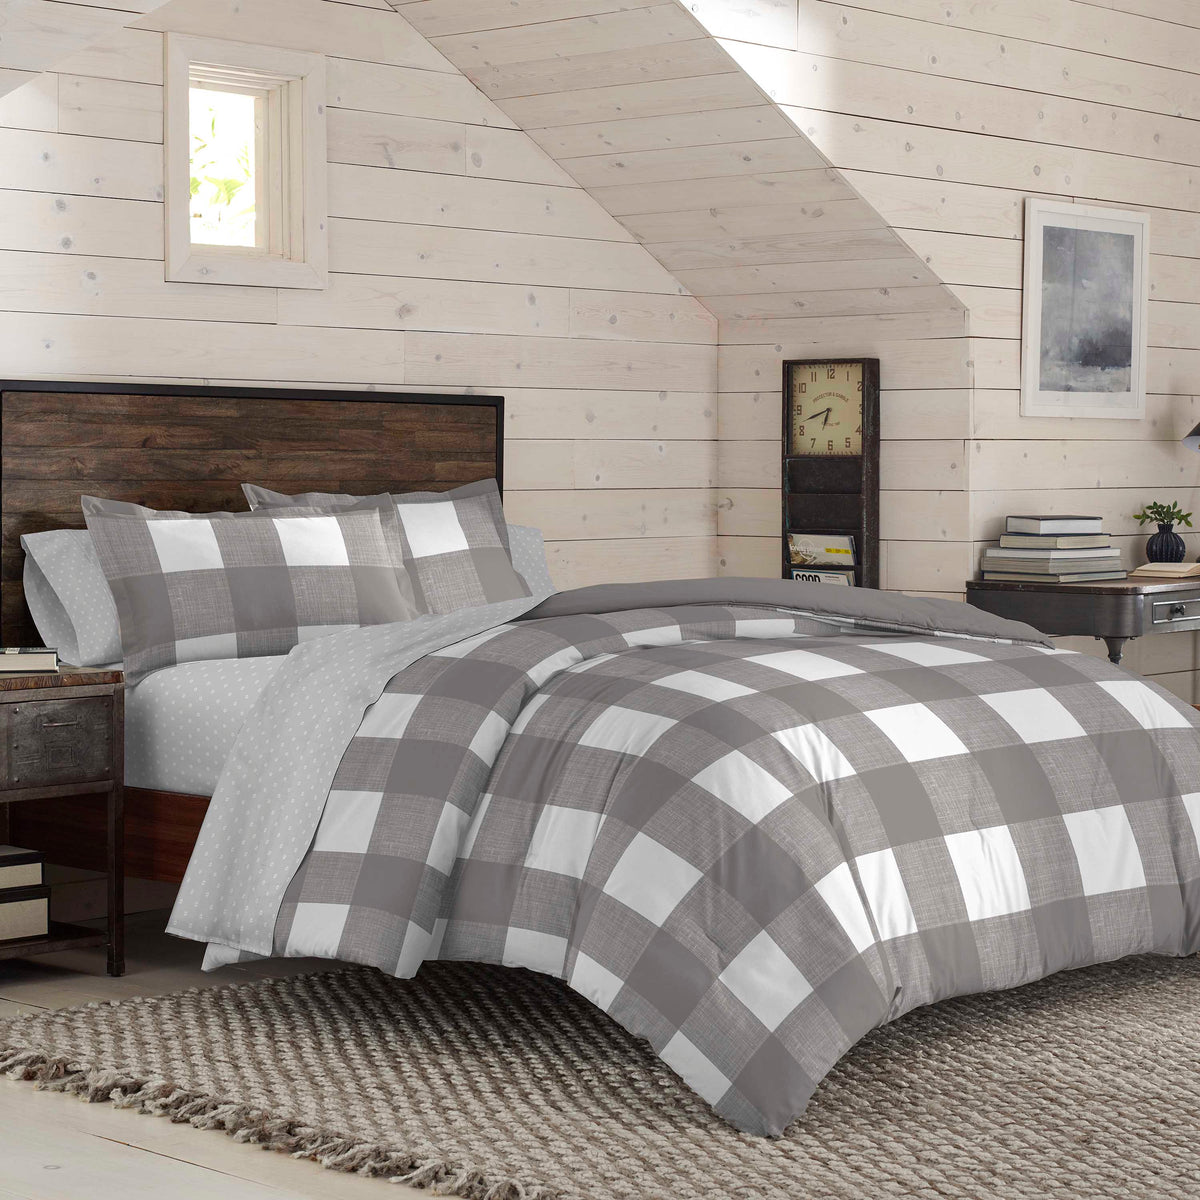 IZOD Buffalo Plaid Comforter Set